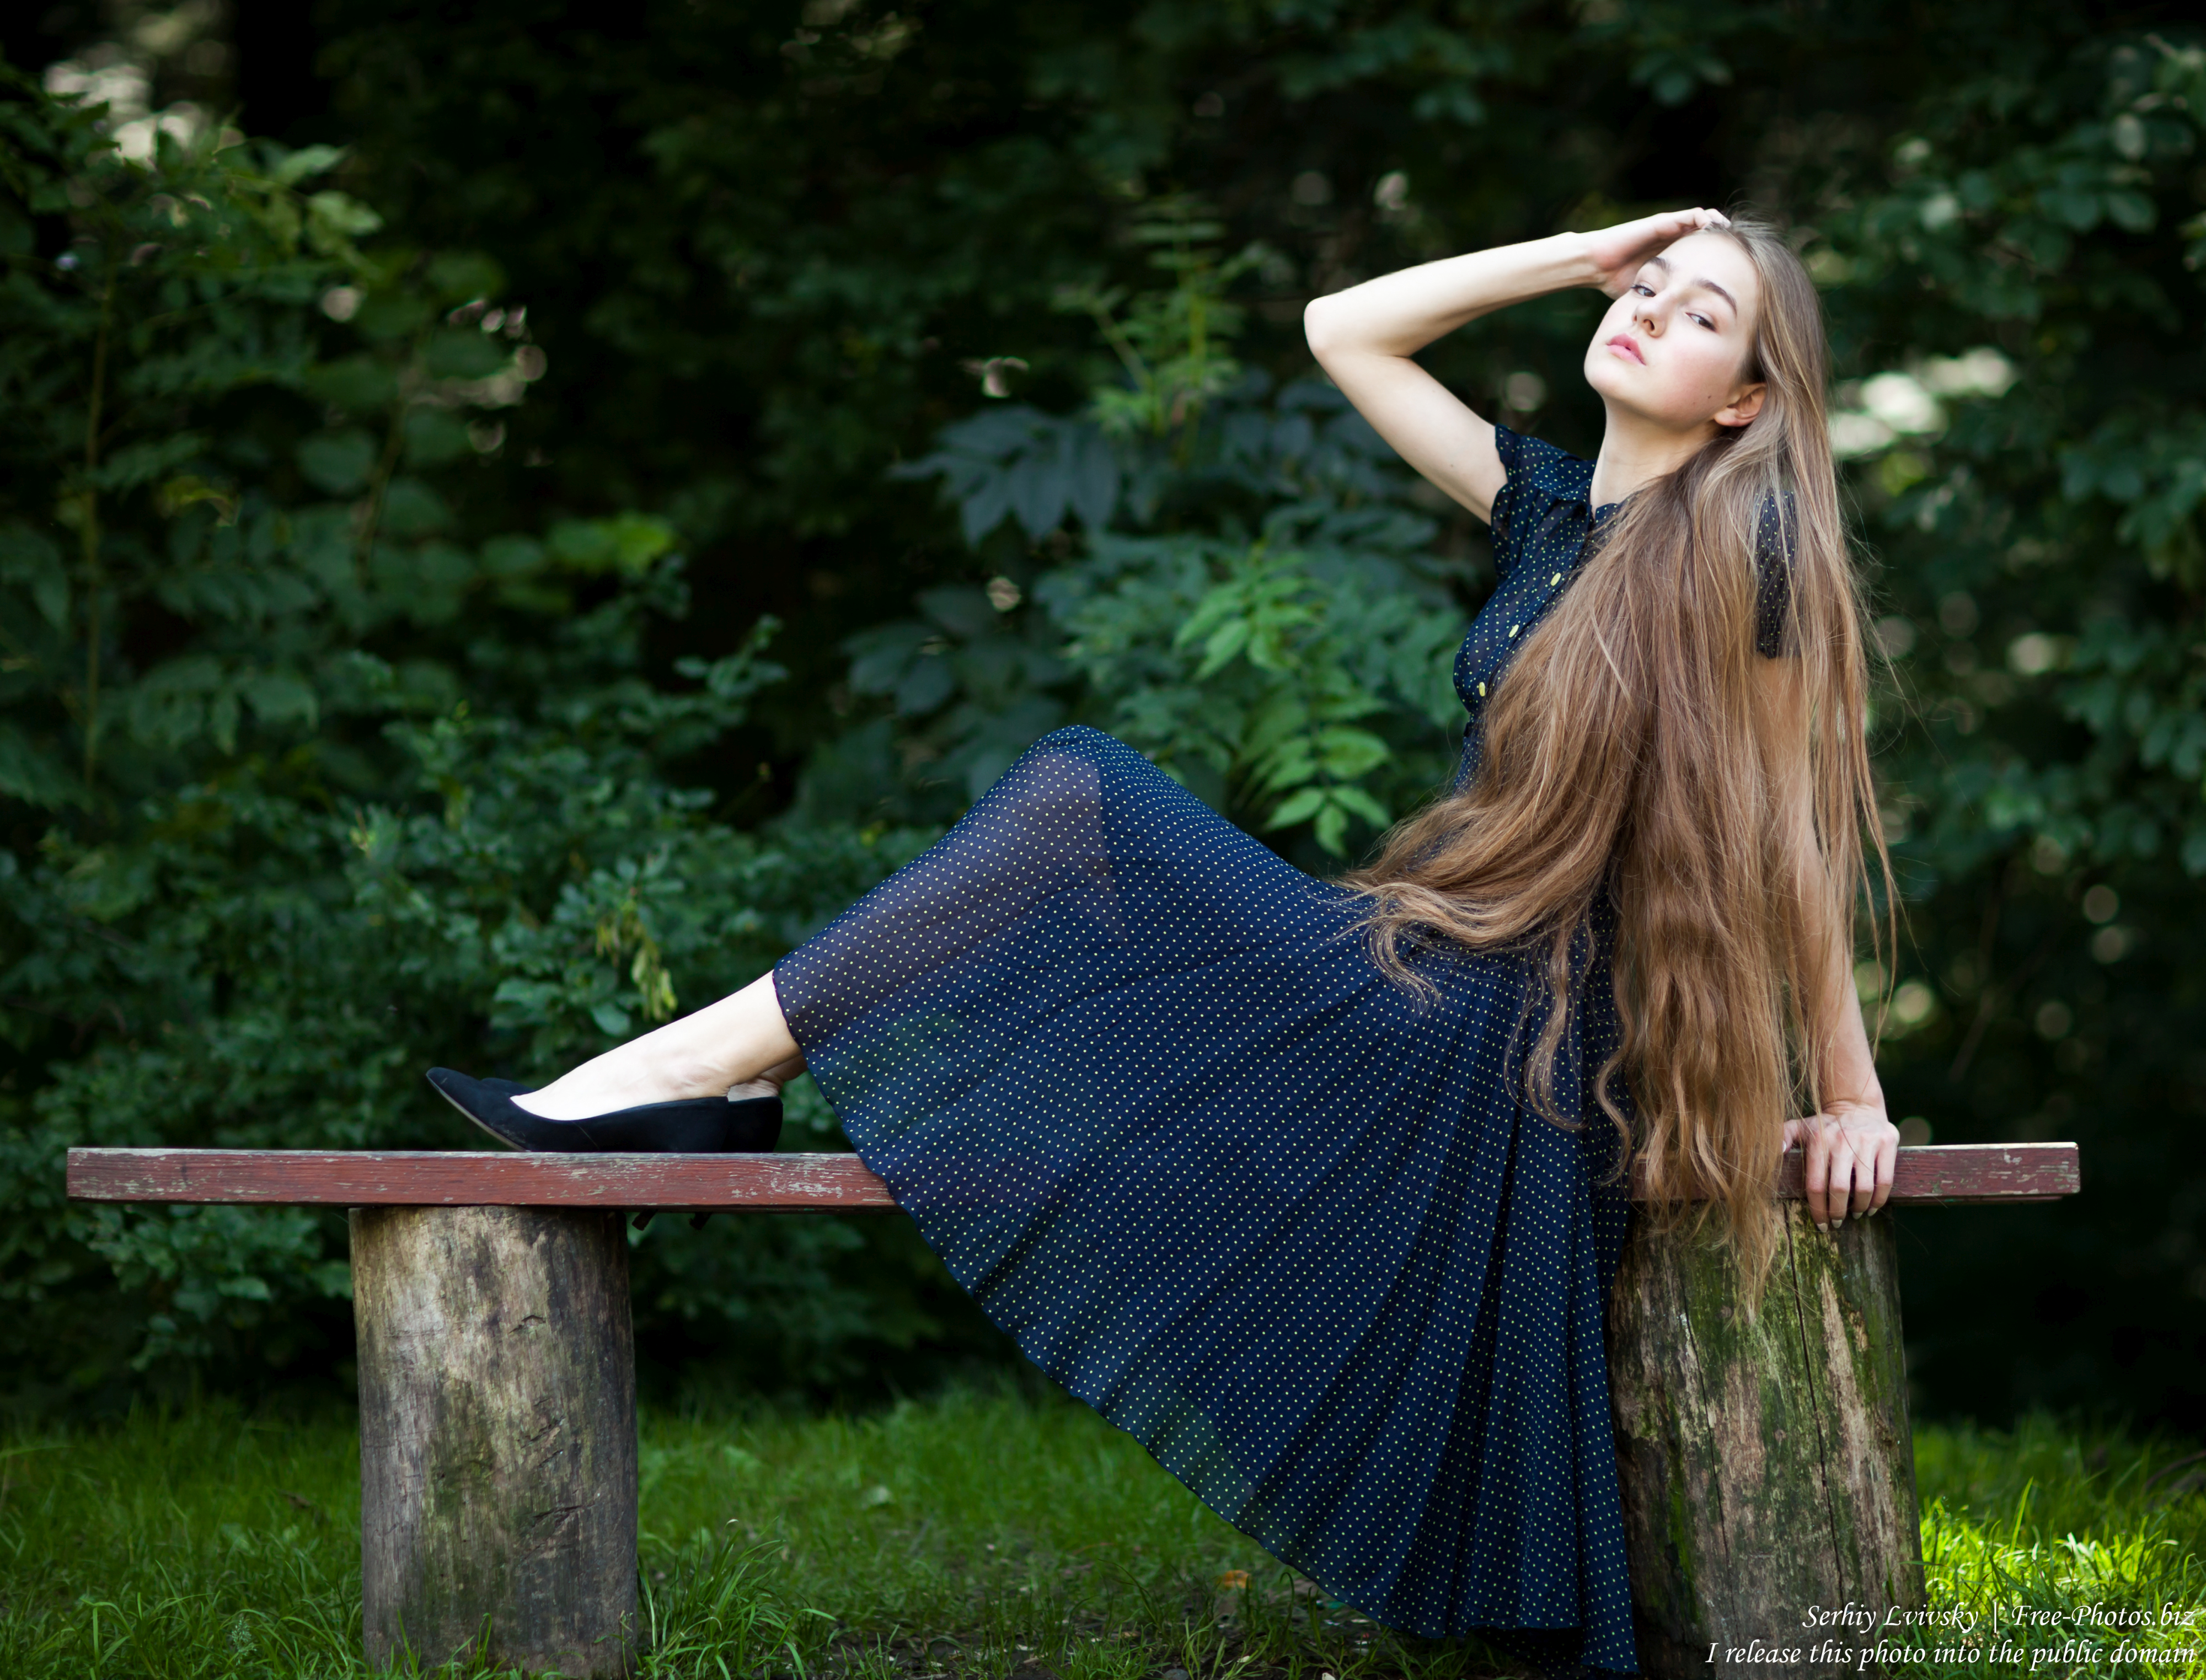 justyna_a_16-year-old_fair-haired_girl_photographed_in_june_2018_by_serhiy_lvivsky_22